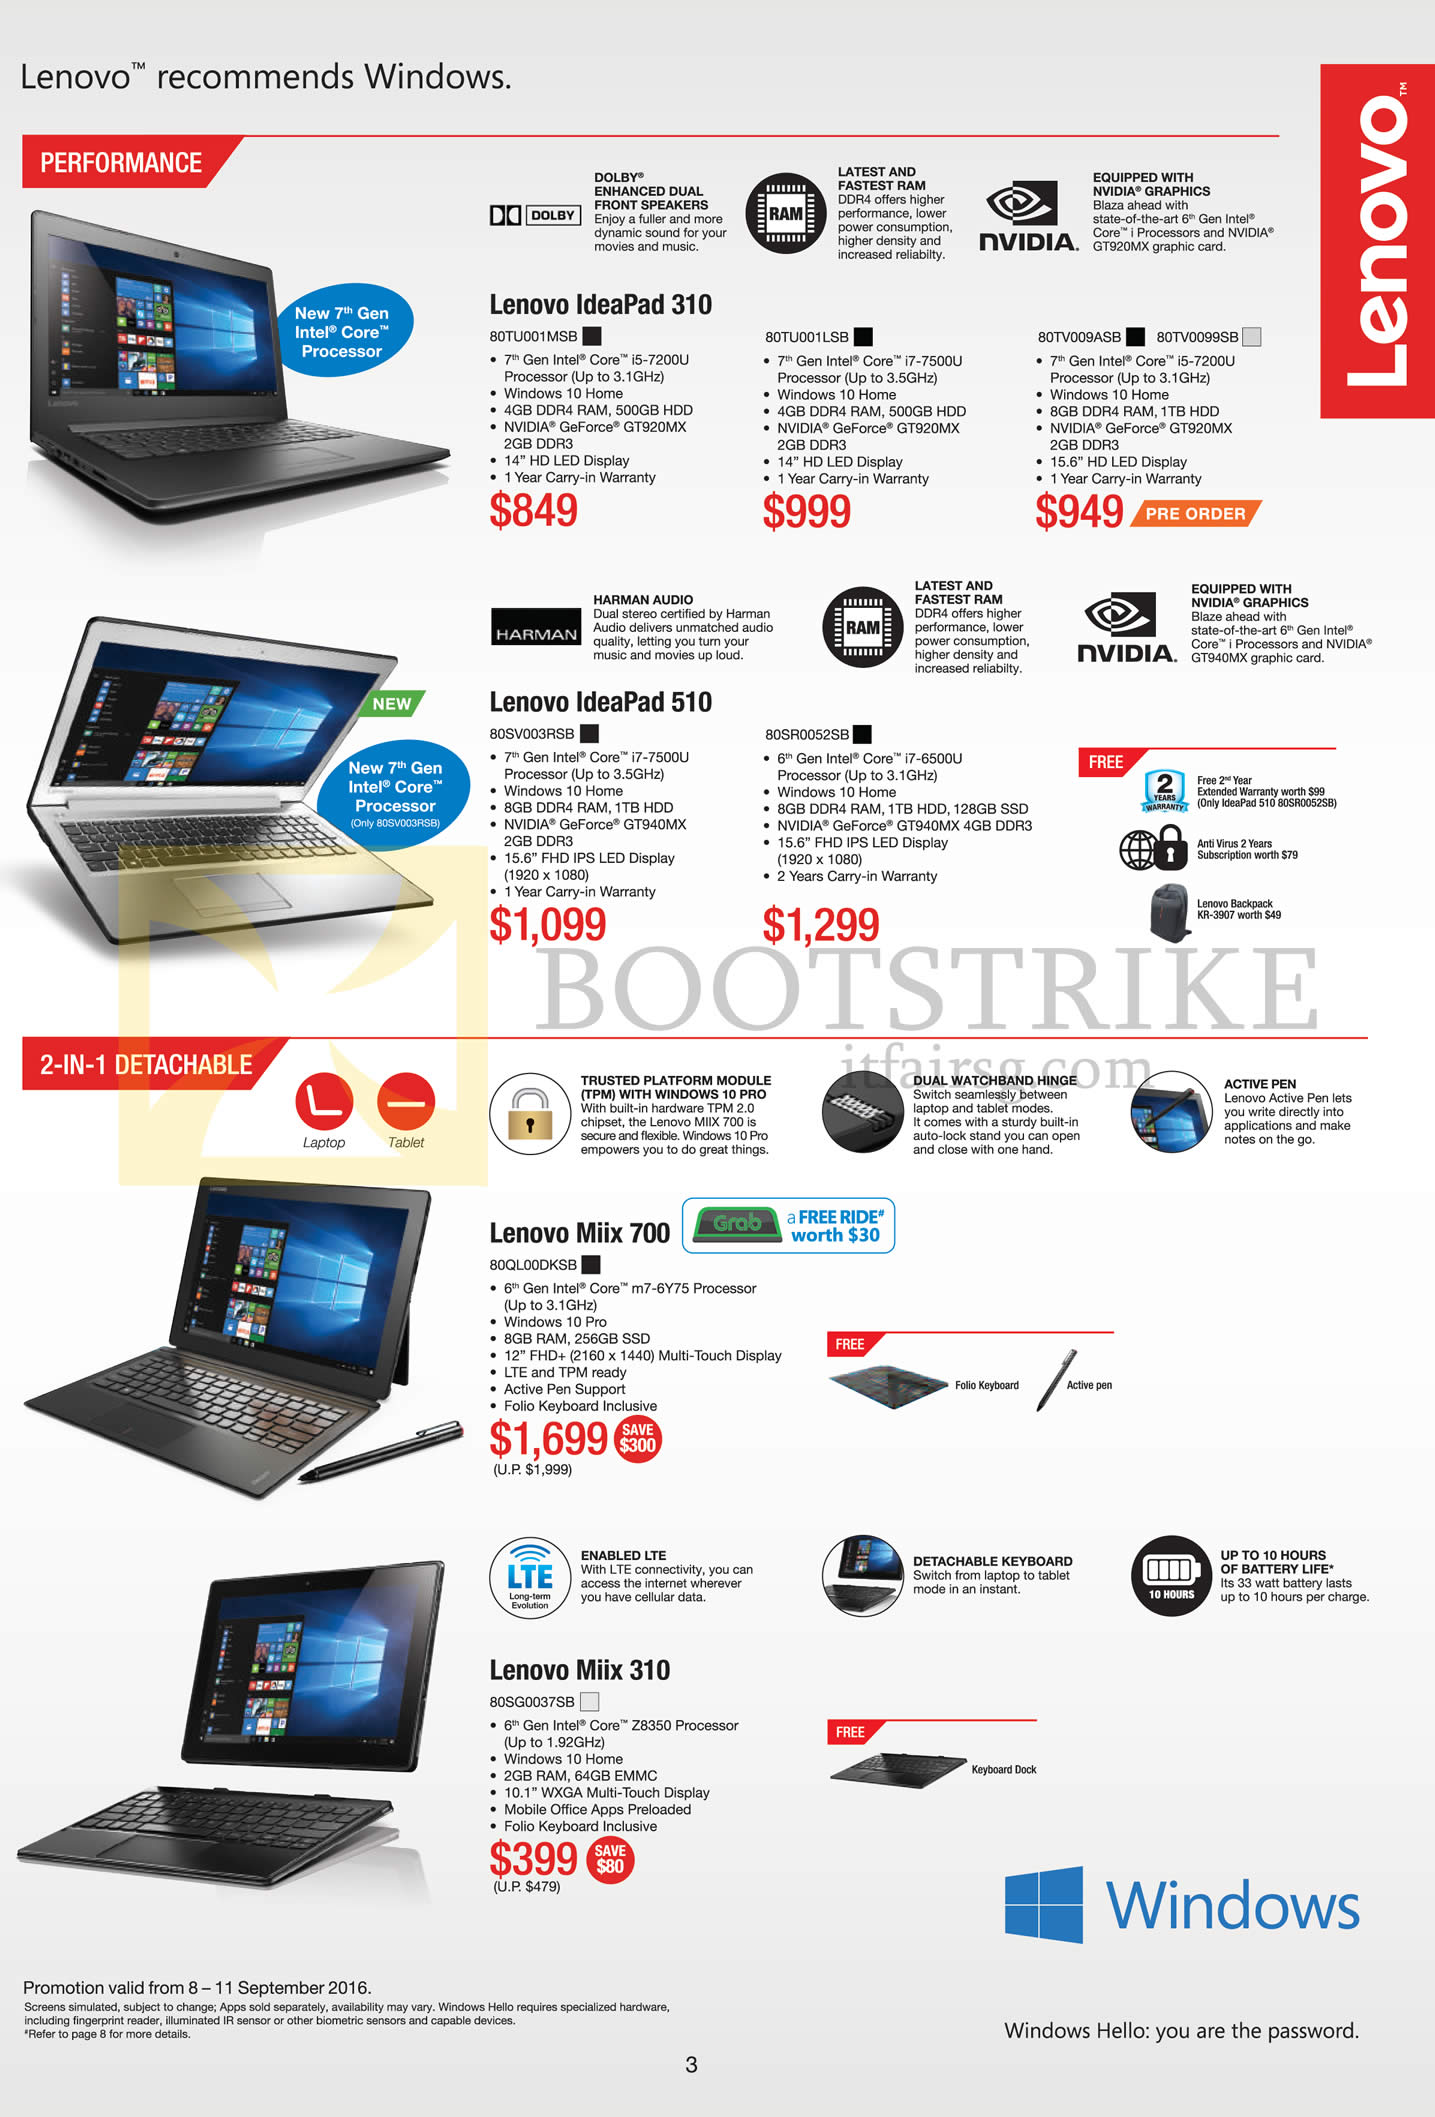 COMEX 2016 price list image brochure of Lenovo Notebooks IdeaPad 310, 510, Miix 700, 310